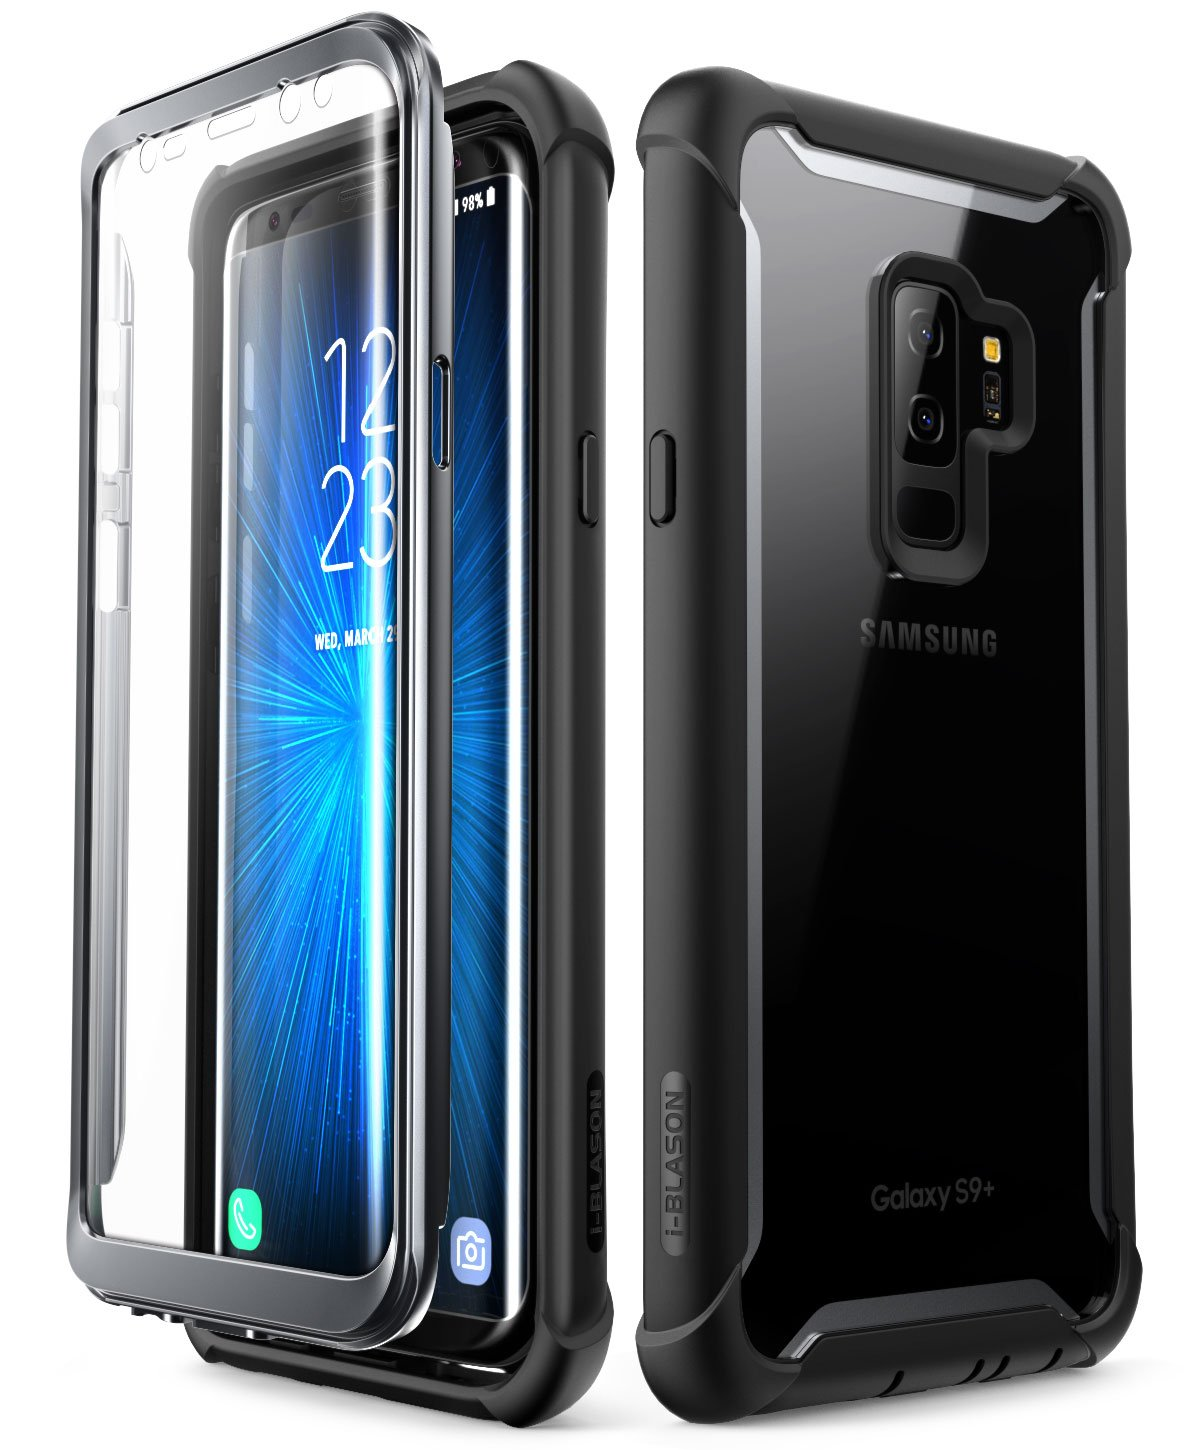 Samsung Galaxy S9 Plus Case I Blason Ares Full Body Cell Phone Shield With Charger Rugged Clear Bumper Built In Screen Protector For 2018 Release Black Phones Accessories